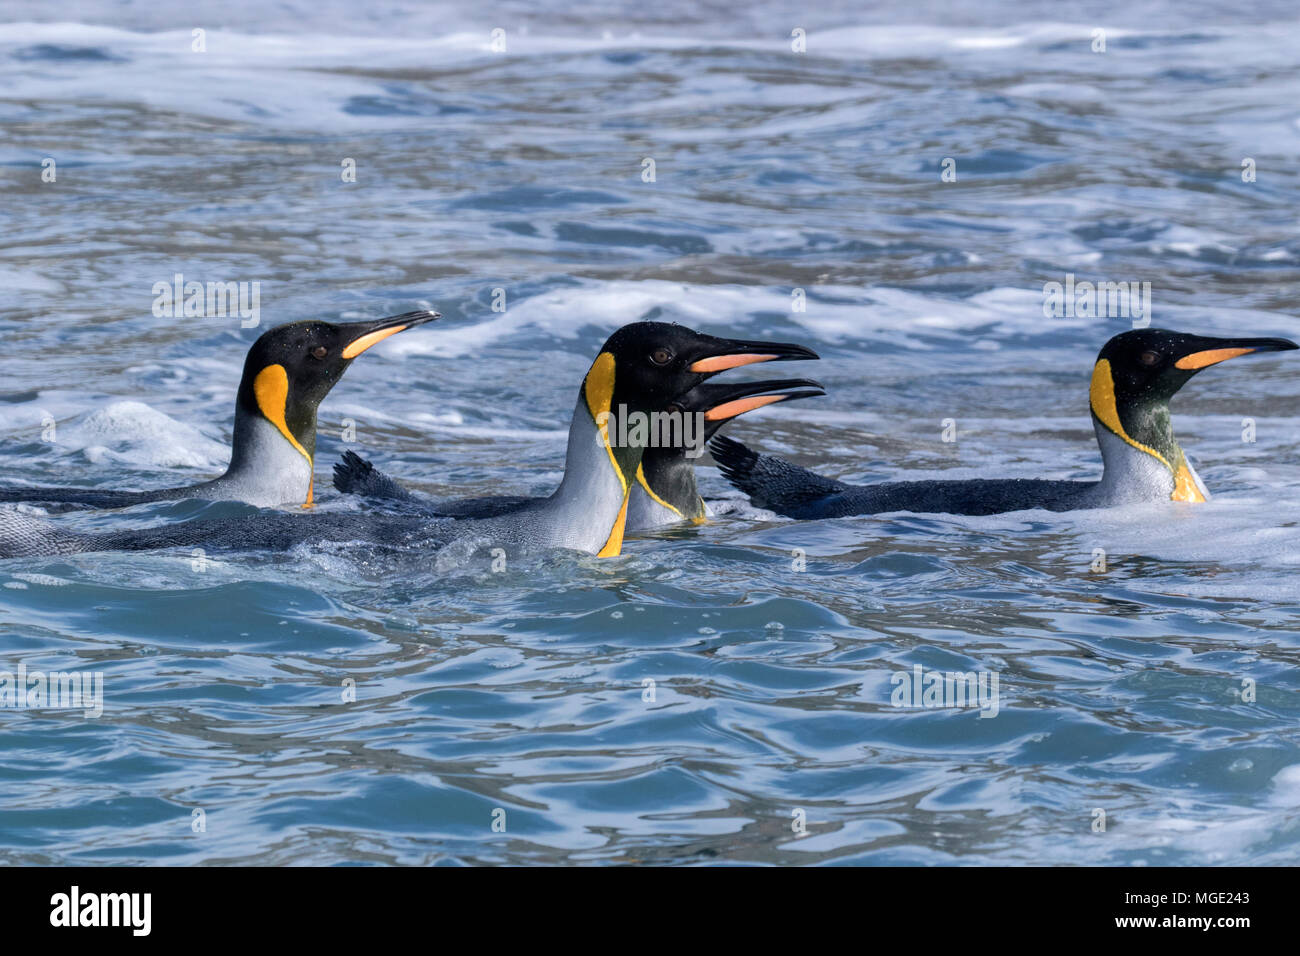 king penguin Aptenodytes patagonicus group of adults swimming offshore from breeding colony Gold Harbour, South Georgia - Stock Image